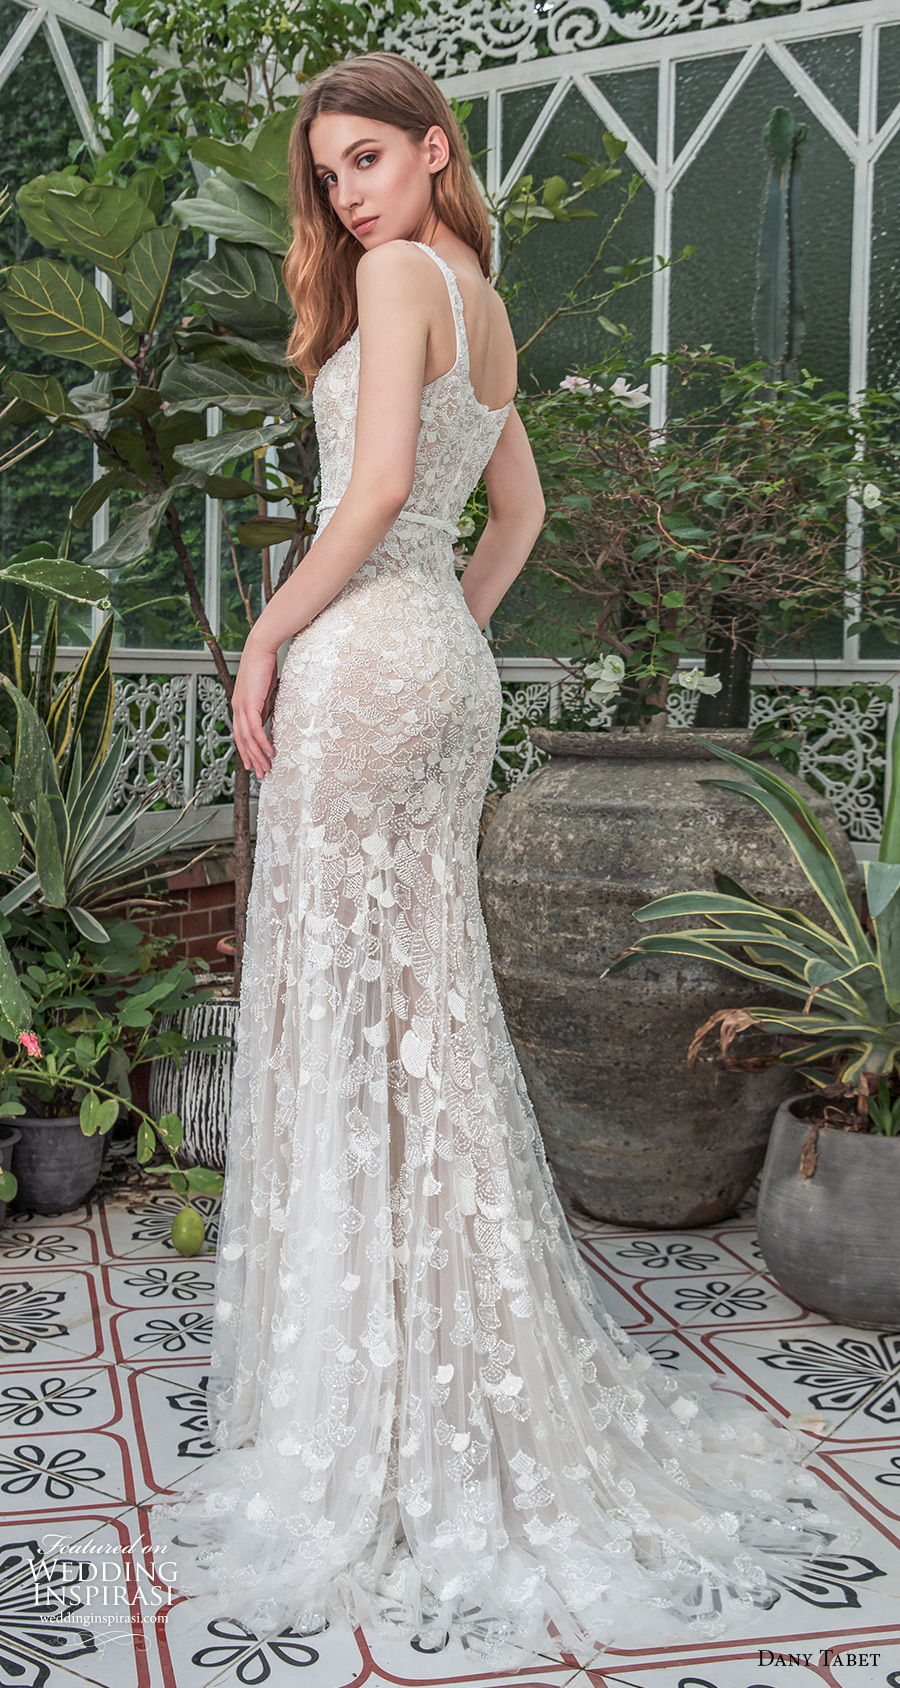 dany tabet 2021 emerge bridal sleeveless square neckline full embellishment romantic fit and flare wedding dress a  line overskirt mid back chapel train (13) bv